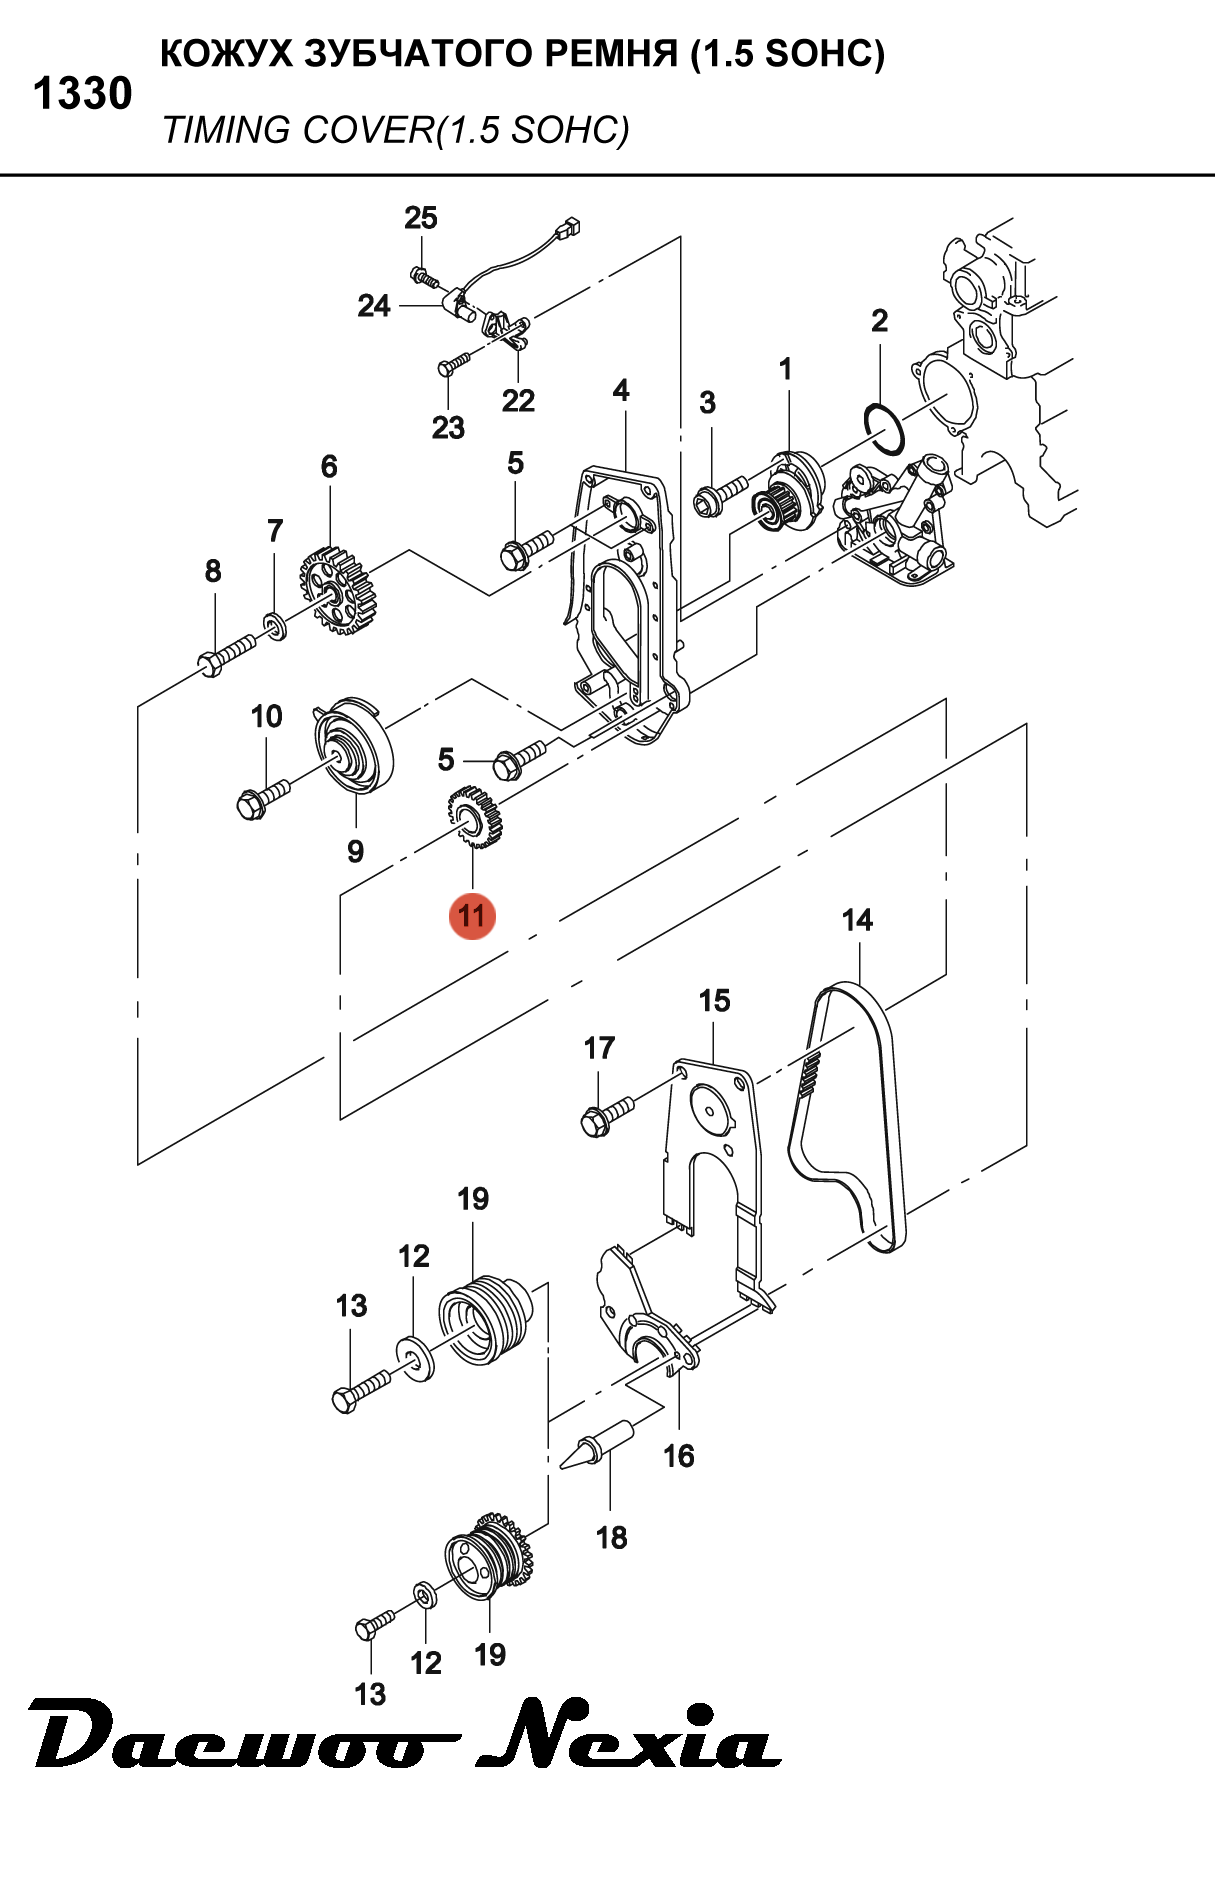 Daewoo Lanos Engine Wiring Diagram